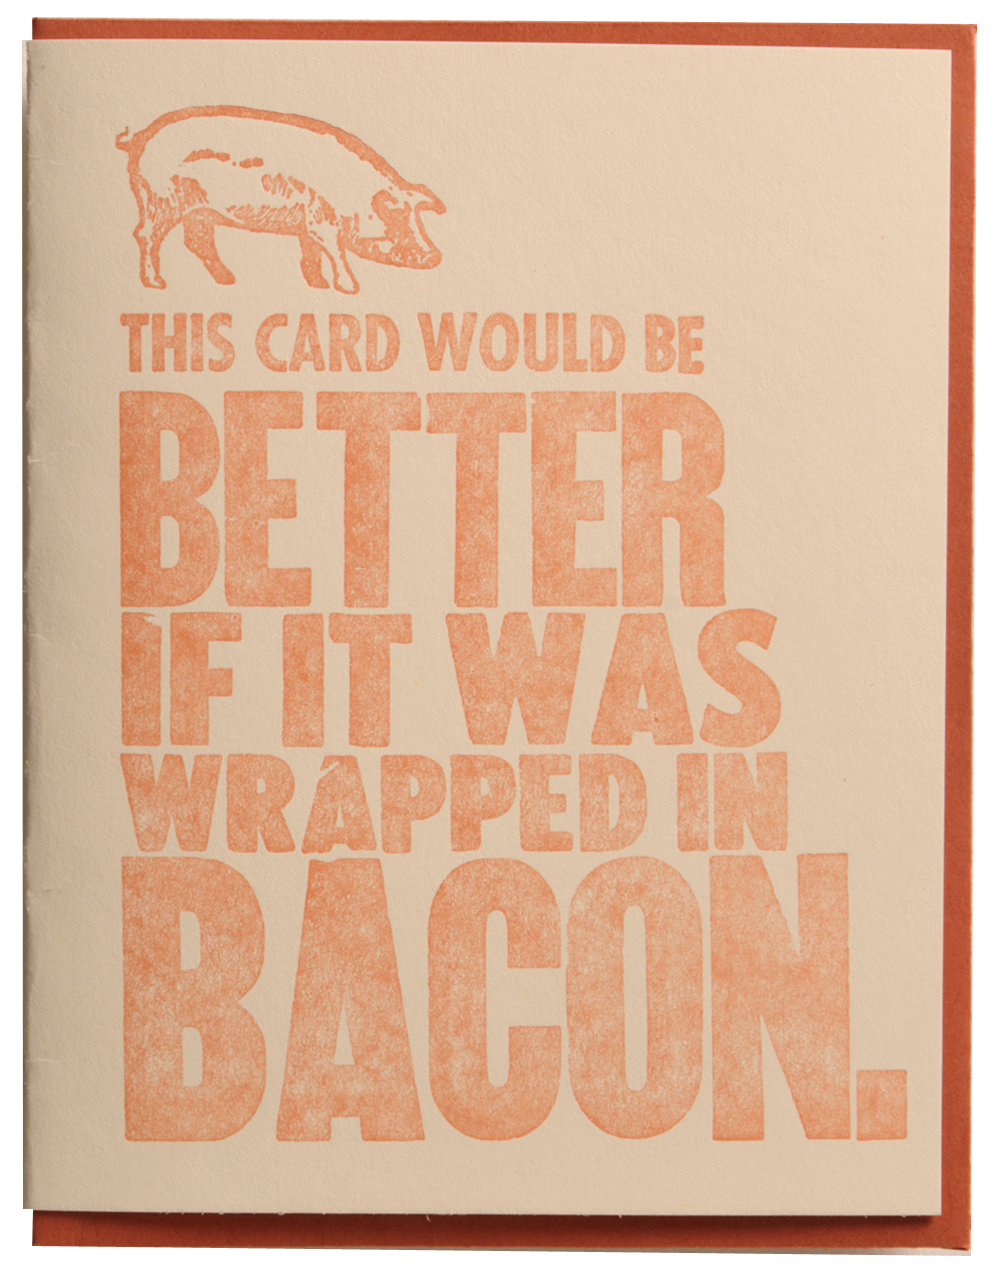 Greeting cards zeichen press this card would better if it was wrapped in bacon m4hsunfo